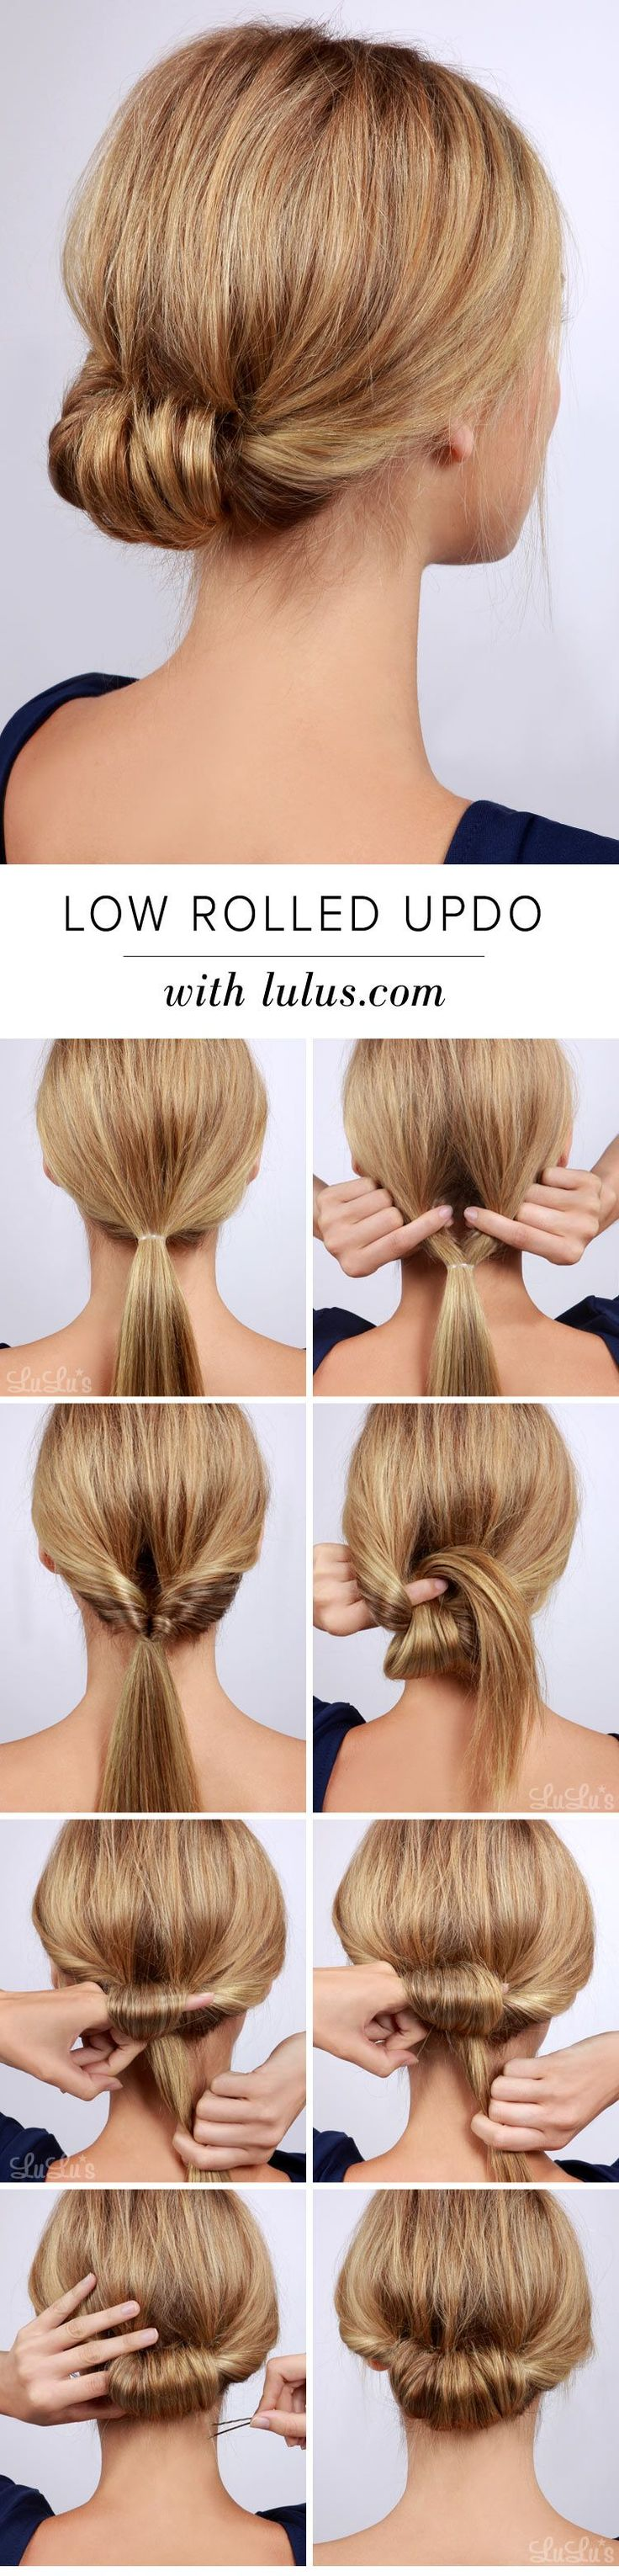 Surprising 1000 Ideas About Work Hairstyles On Pinterest Quick Work Short Hairstyles For Black Women Fulllsitofus